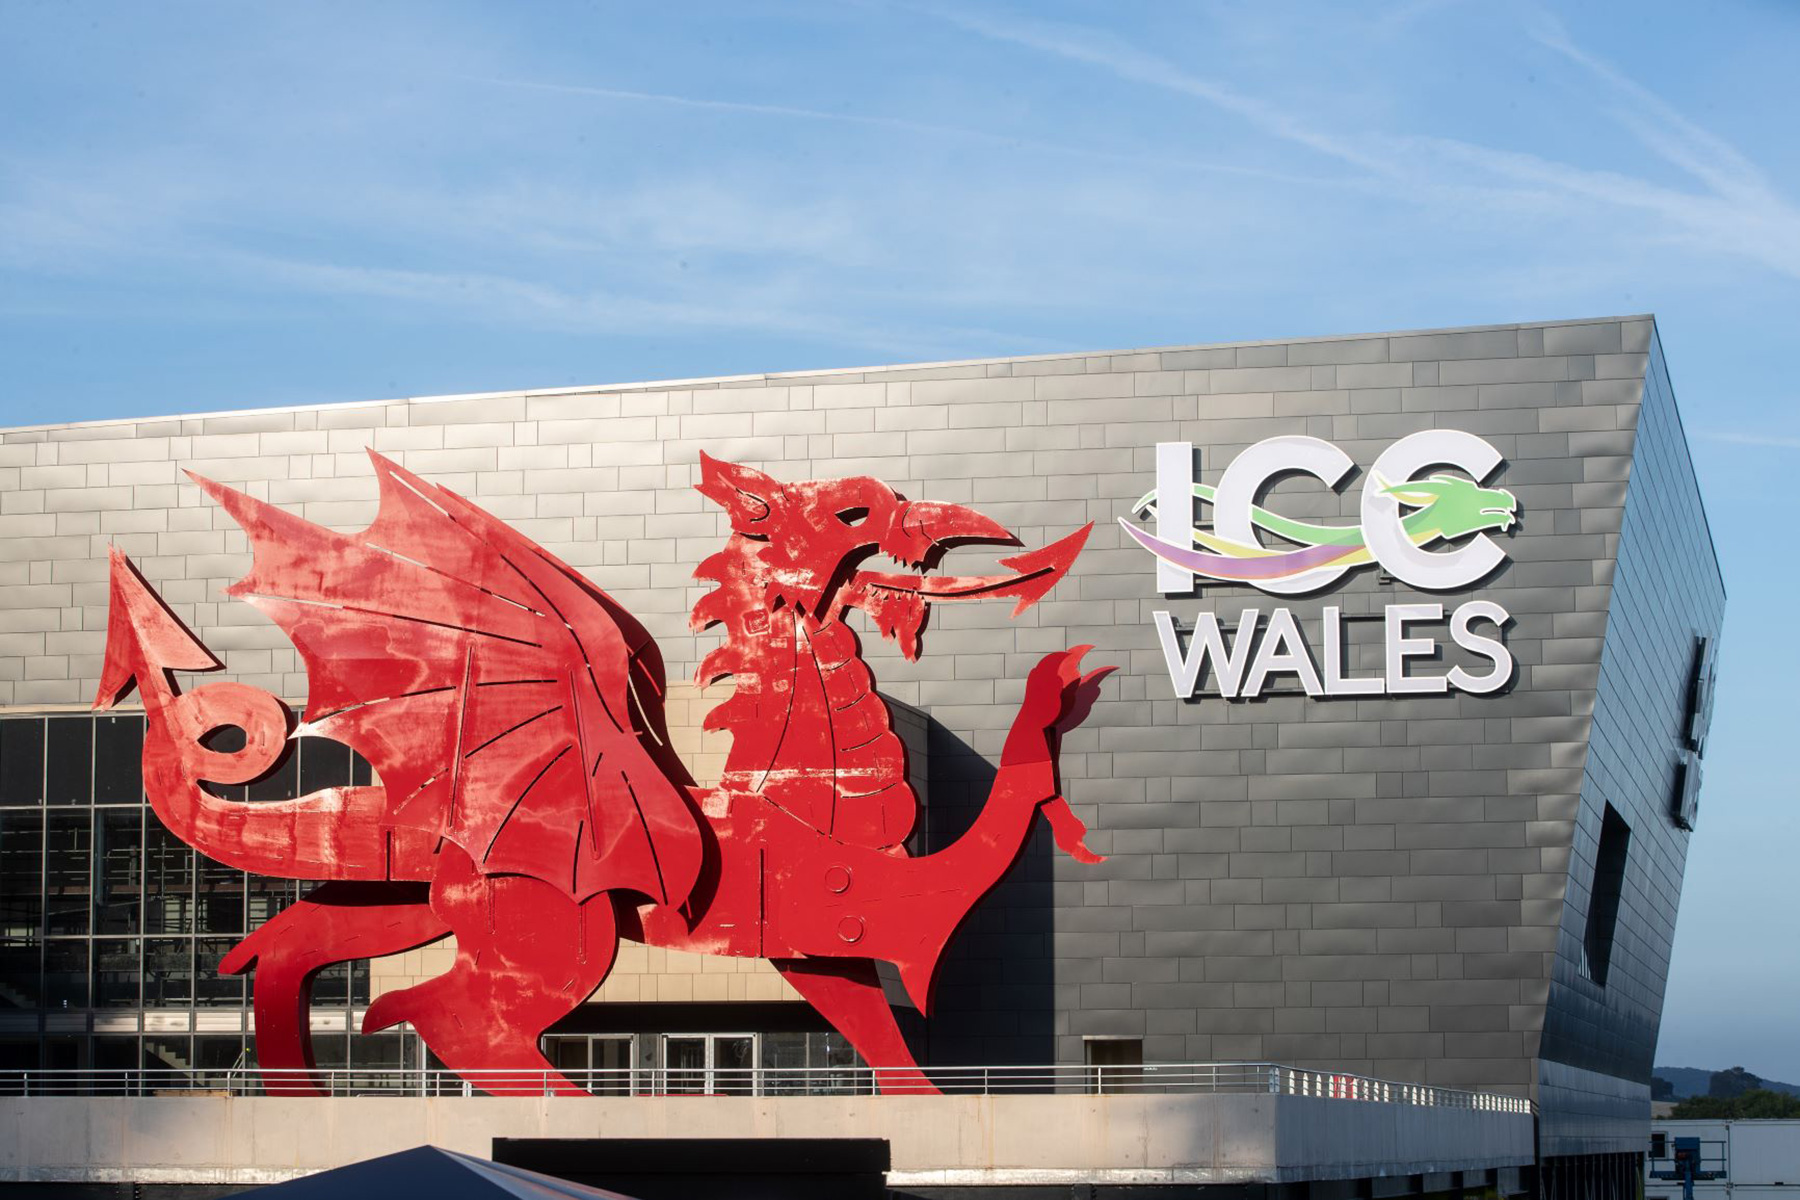 icc_wales